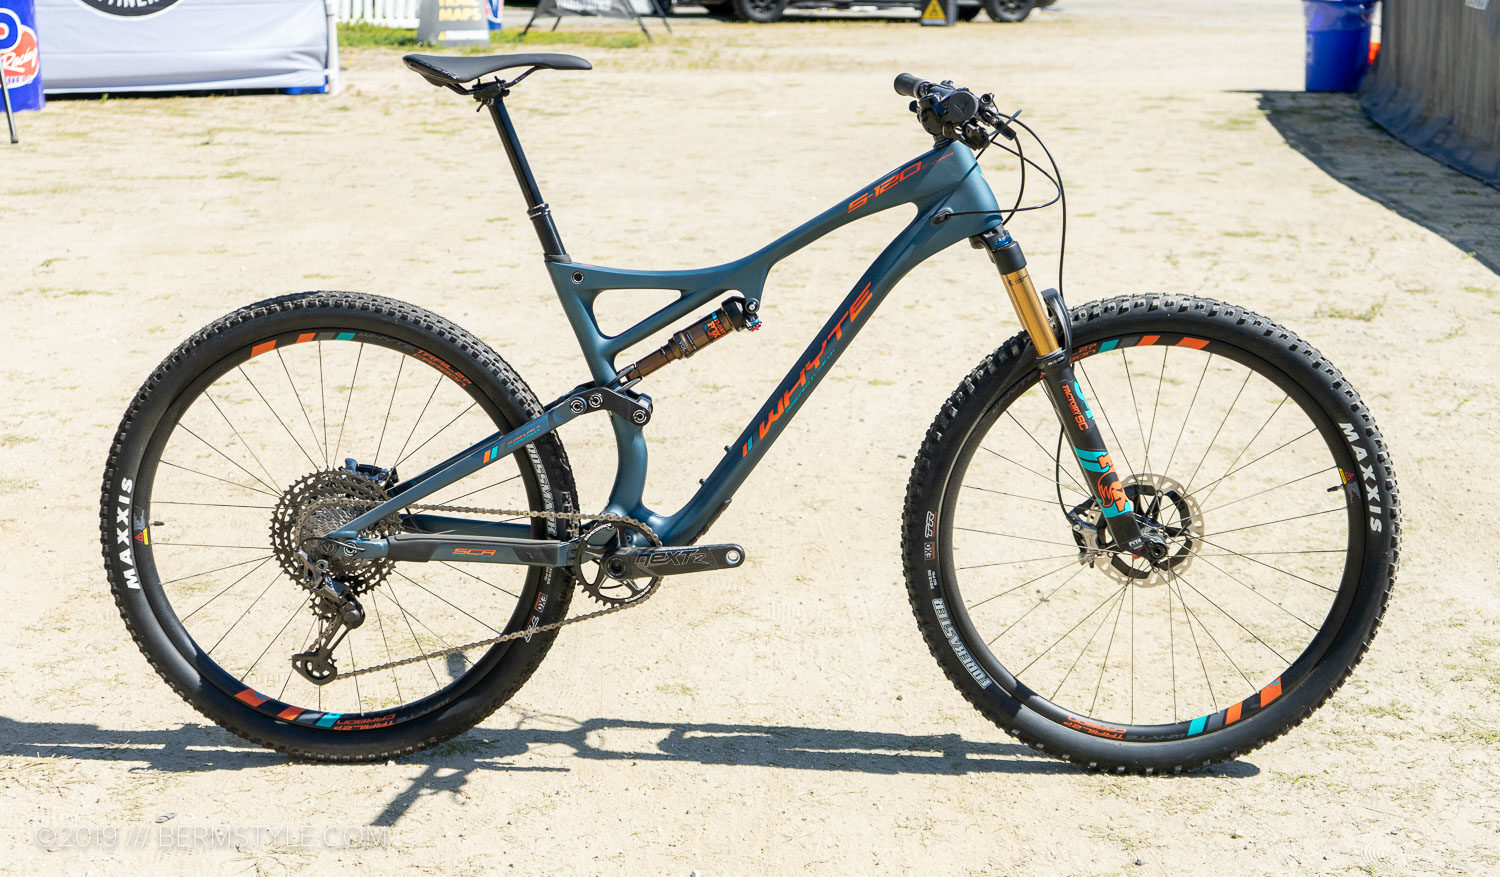 79cf01641cc When it comes to going fast both uphill and down on all day trail rides,  today's bikes are more capable than ever. If you're shopping for a bike in  the XC ...